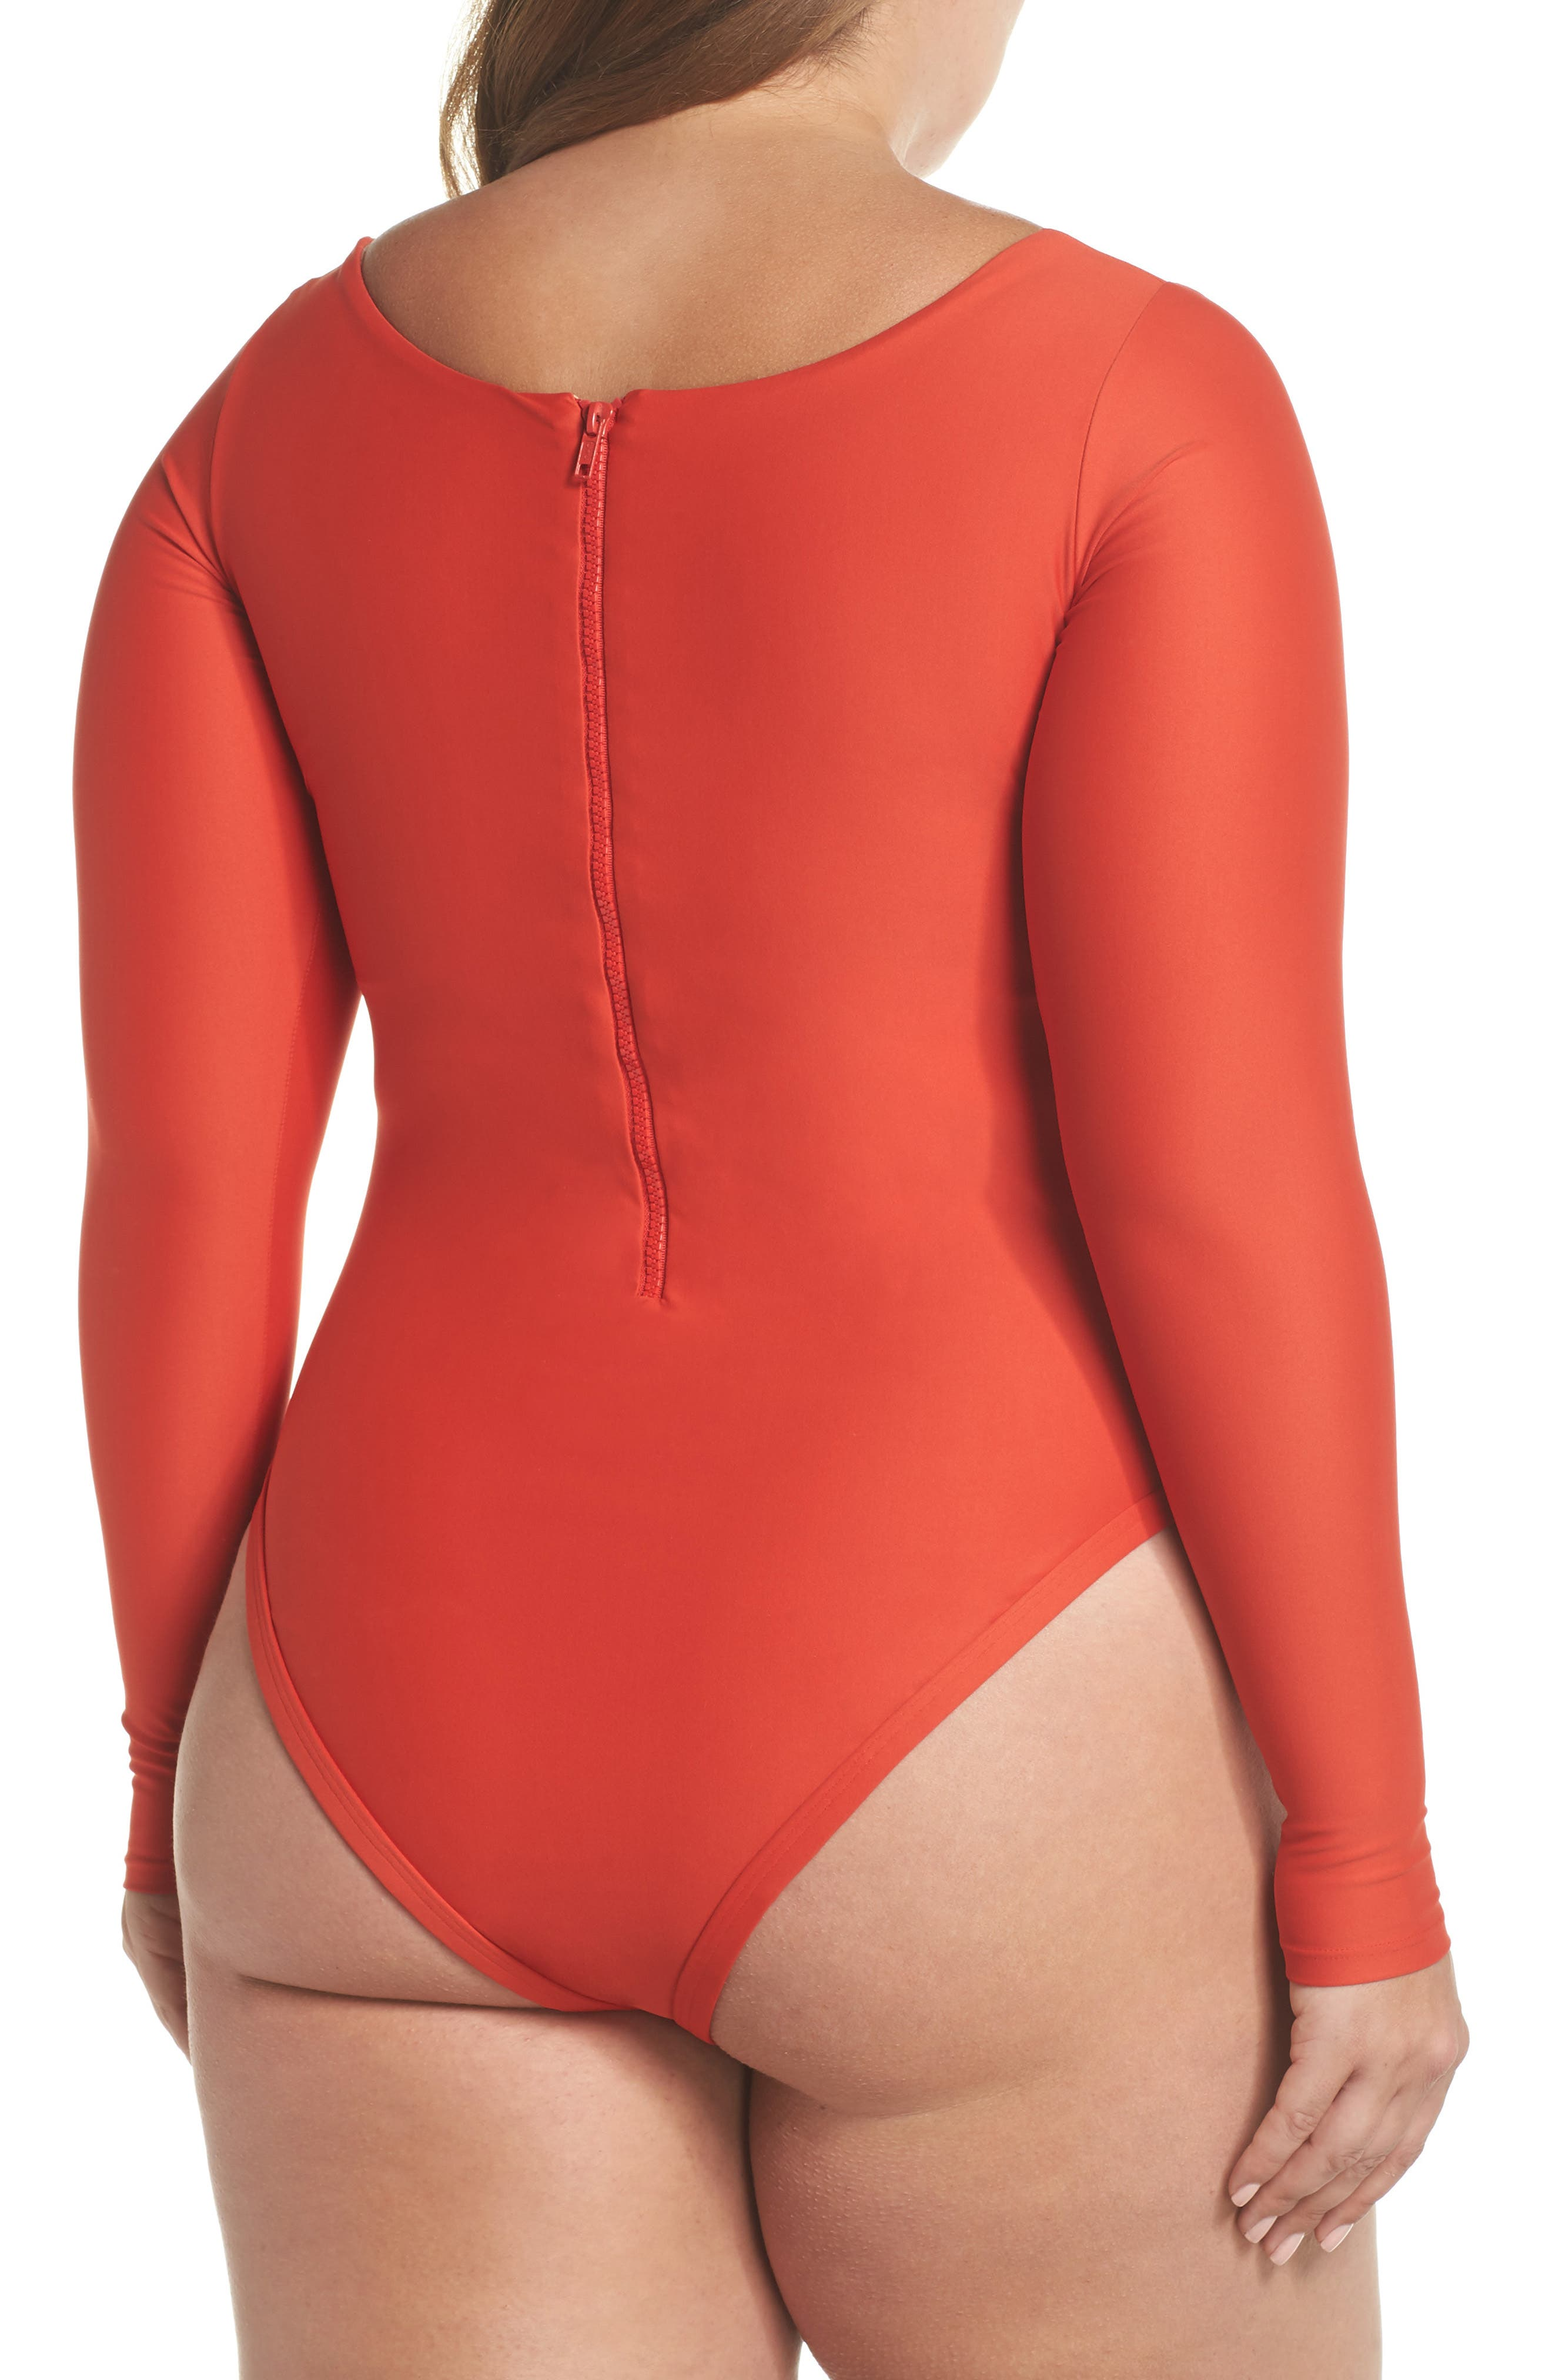 Long Sleeve One-Piece Swimsuit,                             Alternate thumbnail 2, color,                             ROSE RED